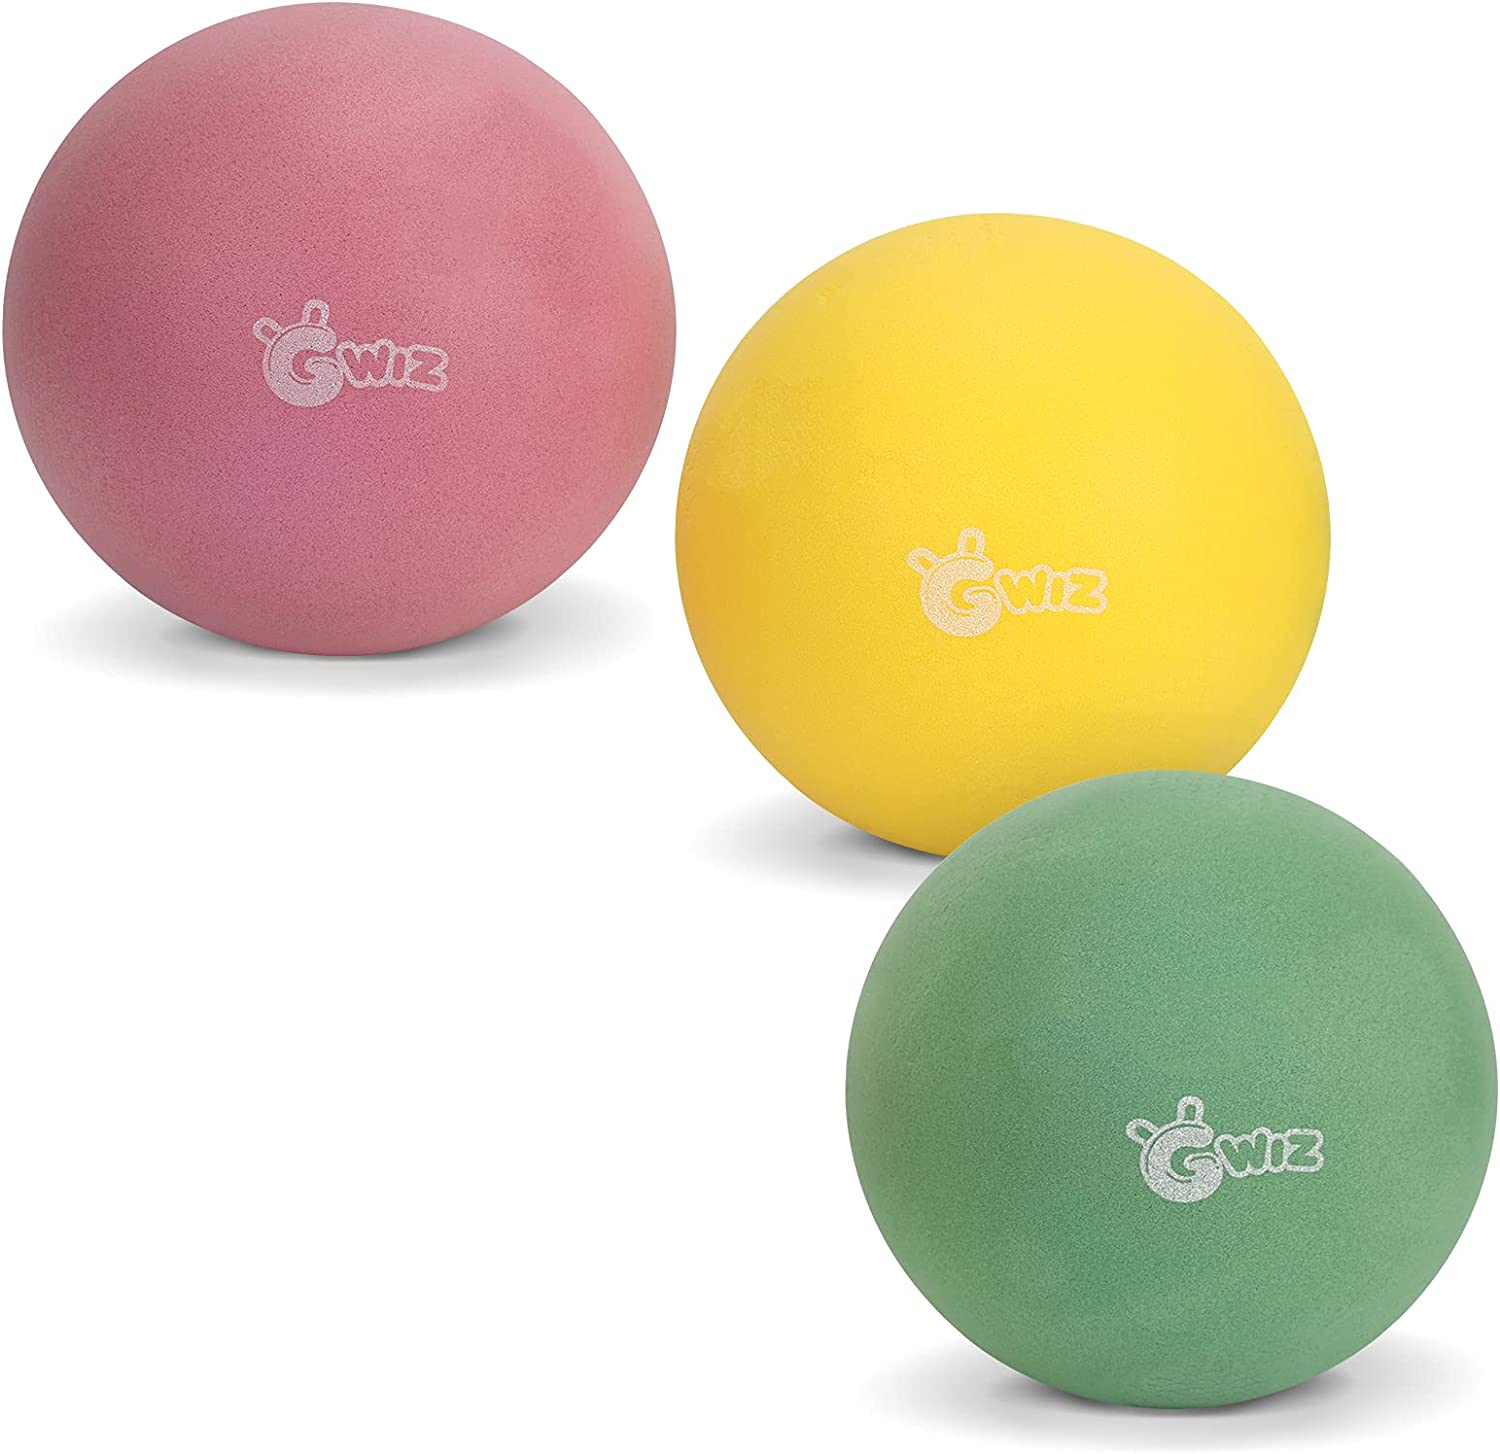 JIASHUN Sensory Ball for Baby Max 44% OFF Max 56% OFF and Pat Bal Indoor Toddlers Silent